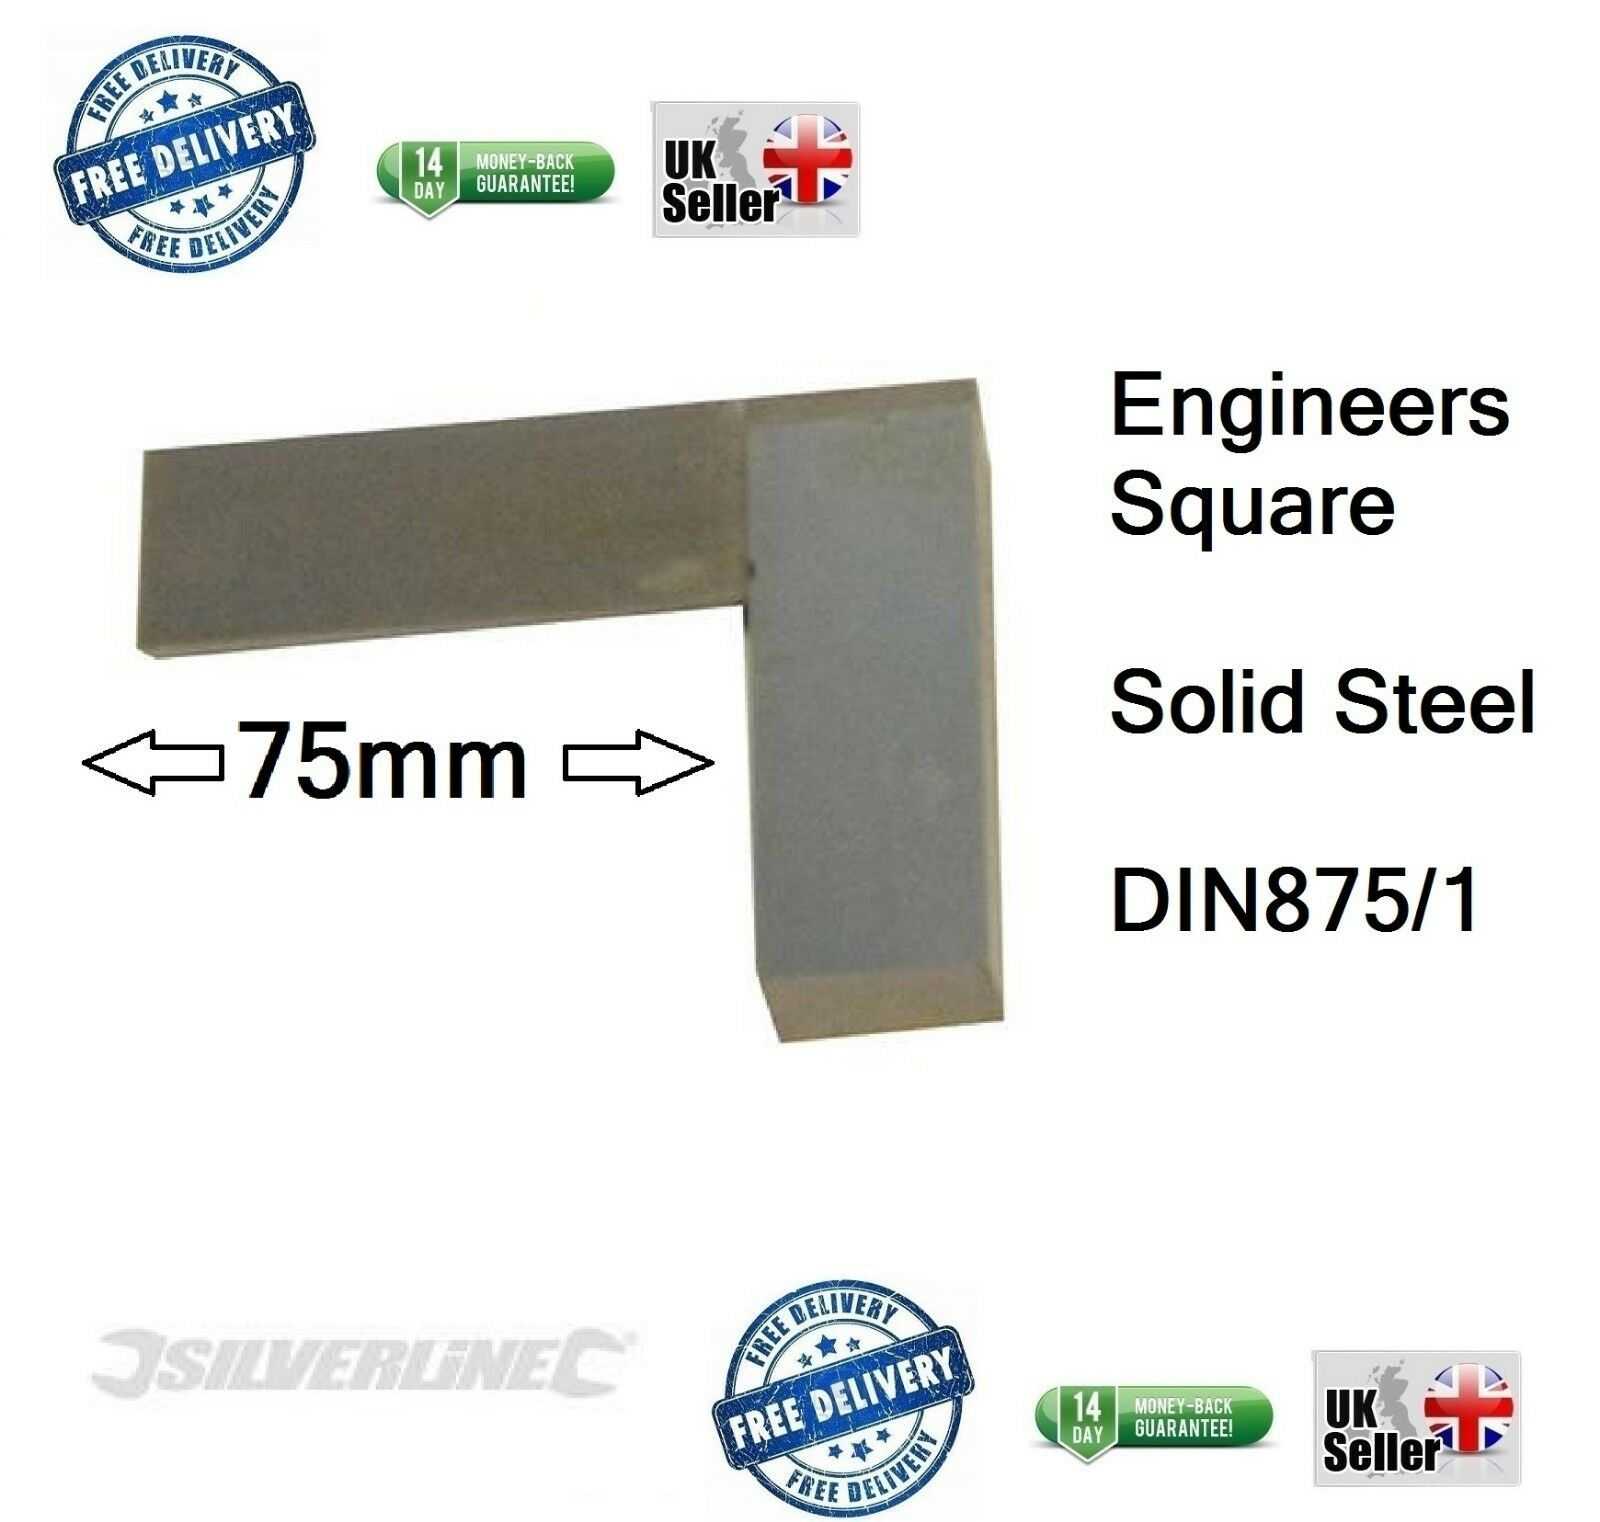 Engineers Square, Set, Metal, Steel, Precision, approx 75mm 2